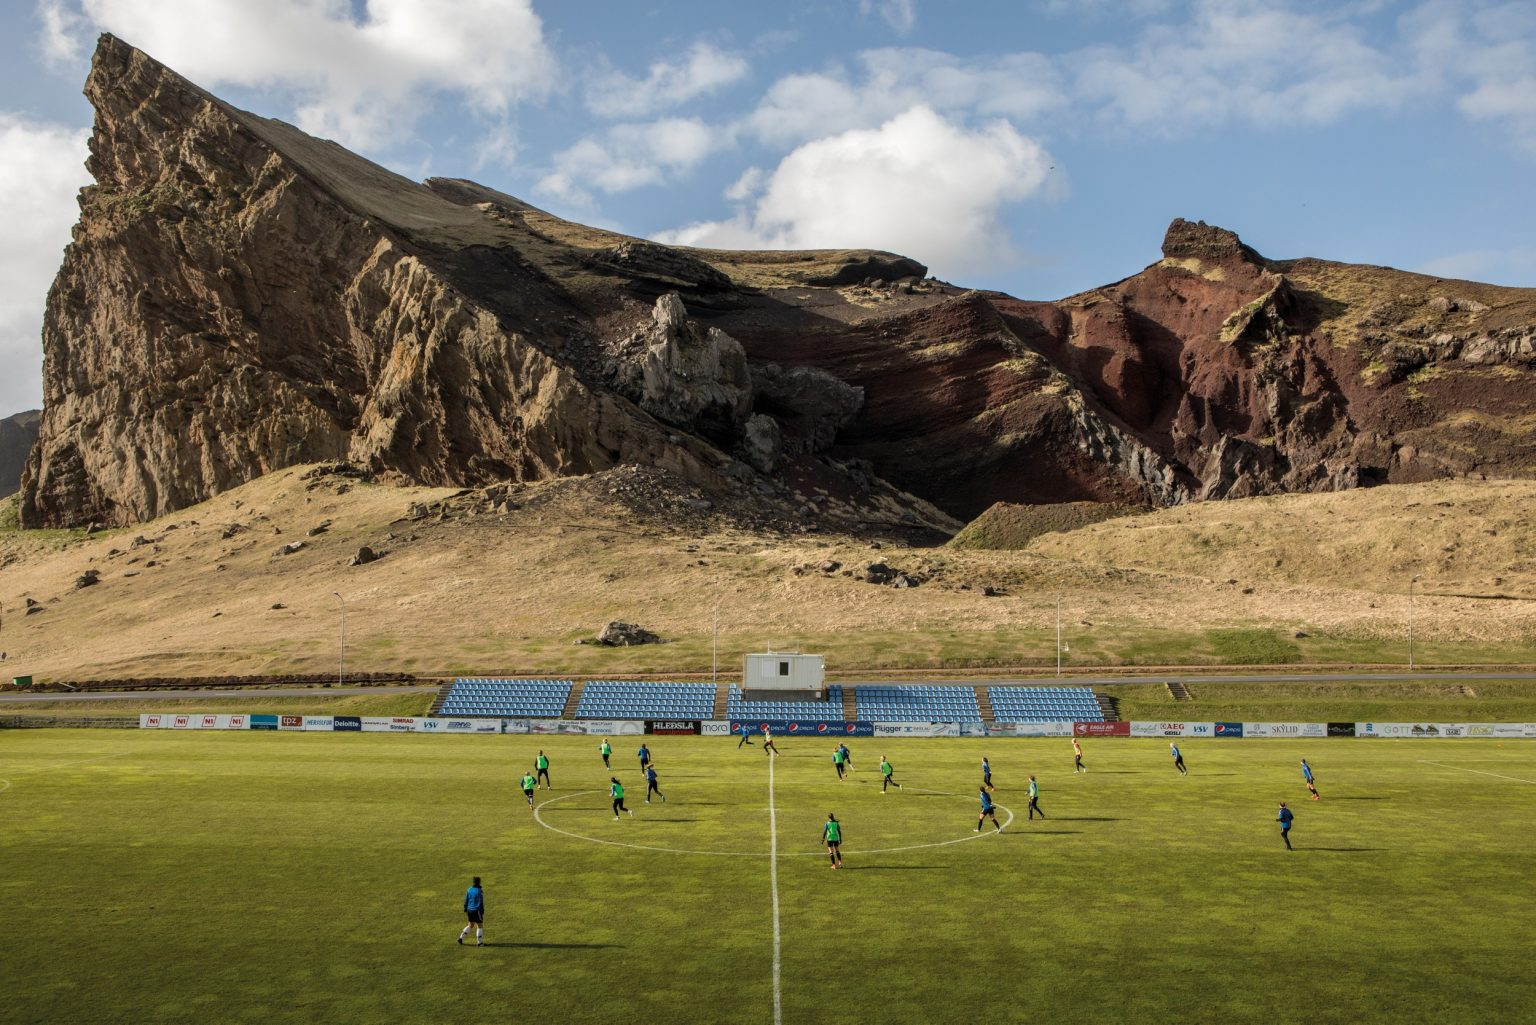 The IBV stadium in Heimaey, among the 20 most beautiful stadiums in the world. Vestmannaeyjar, Iceland, 2018